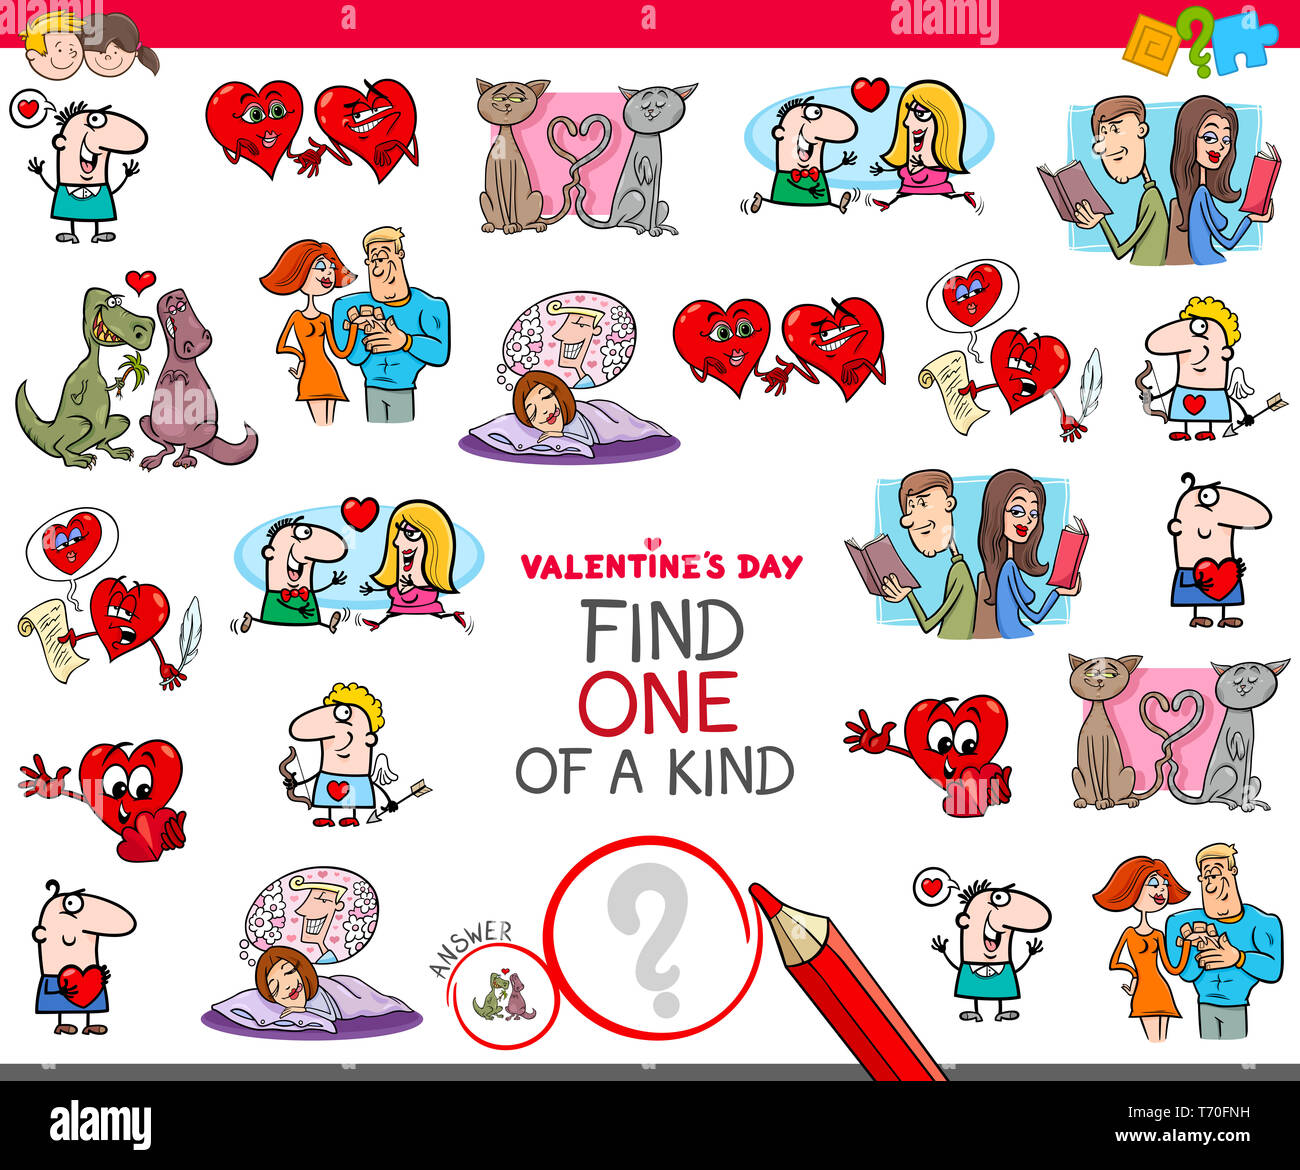 find one of a kind Valentines clip art Stock Photo